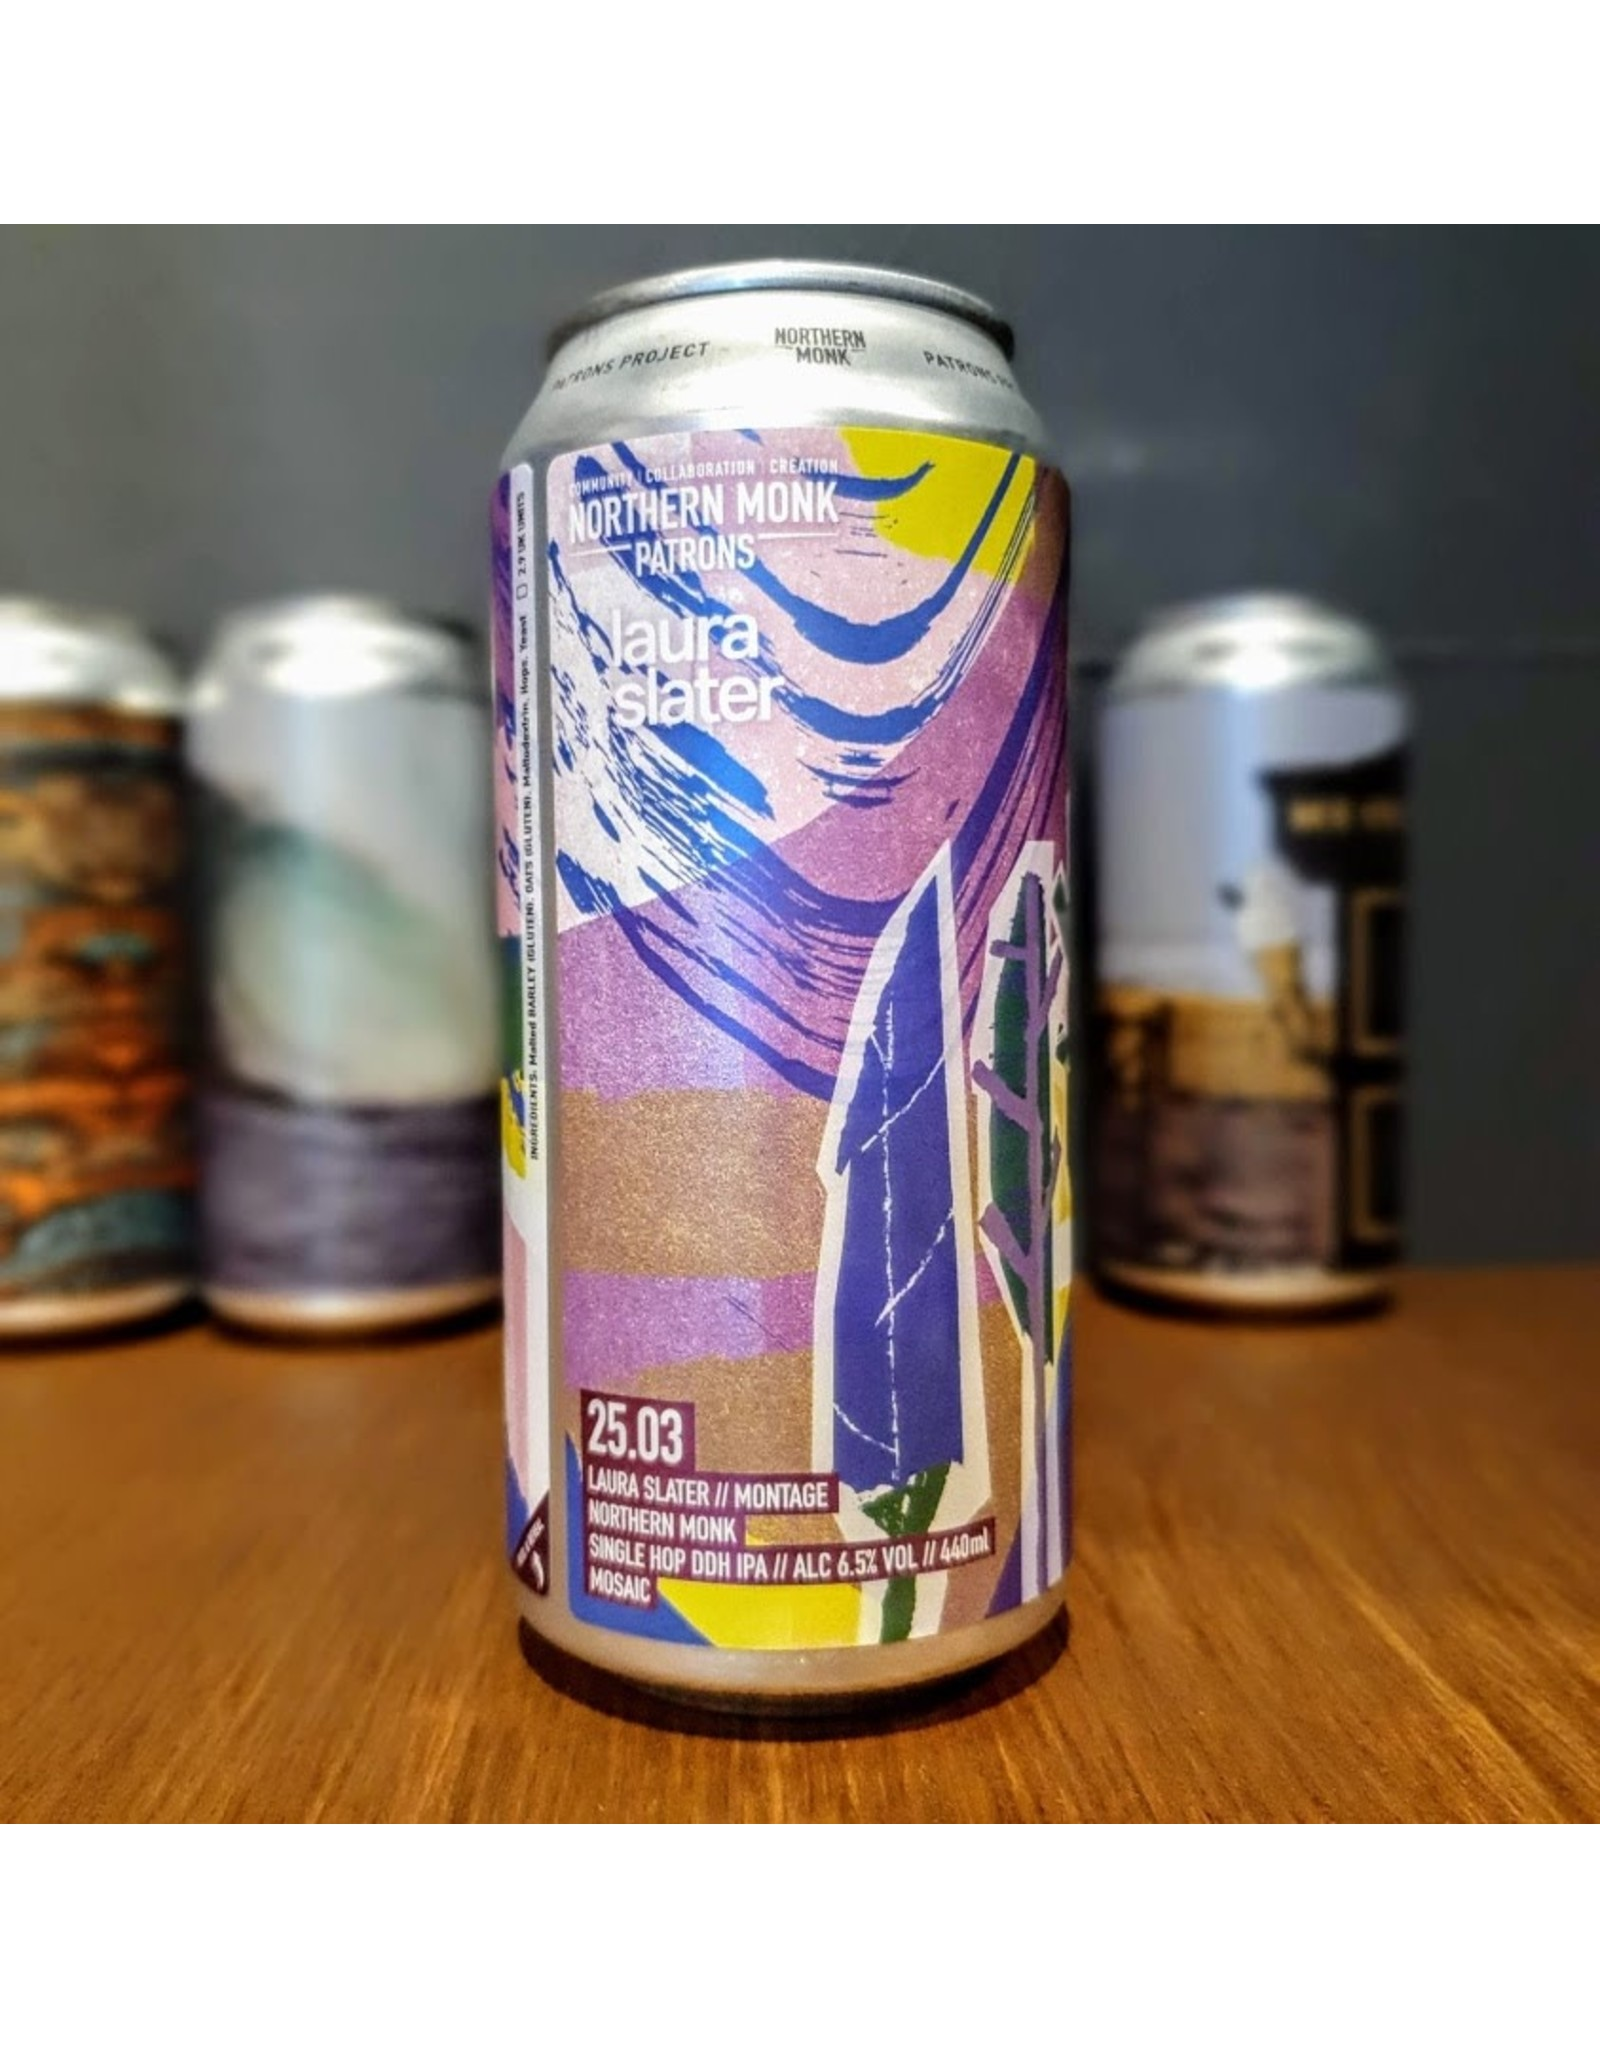 Northern Monk: Patrons Project 25.03 Laura Slater // Montage // Single Hop DDH IPA